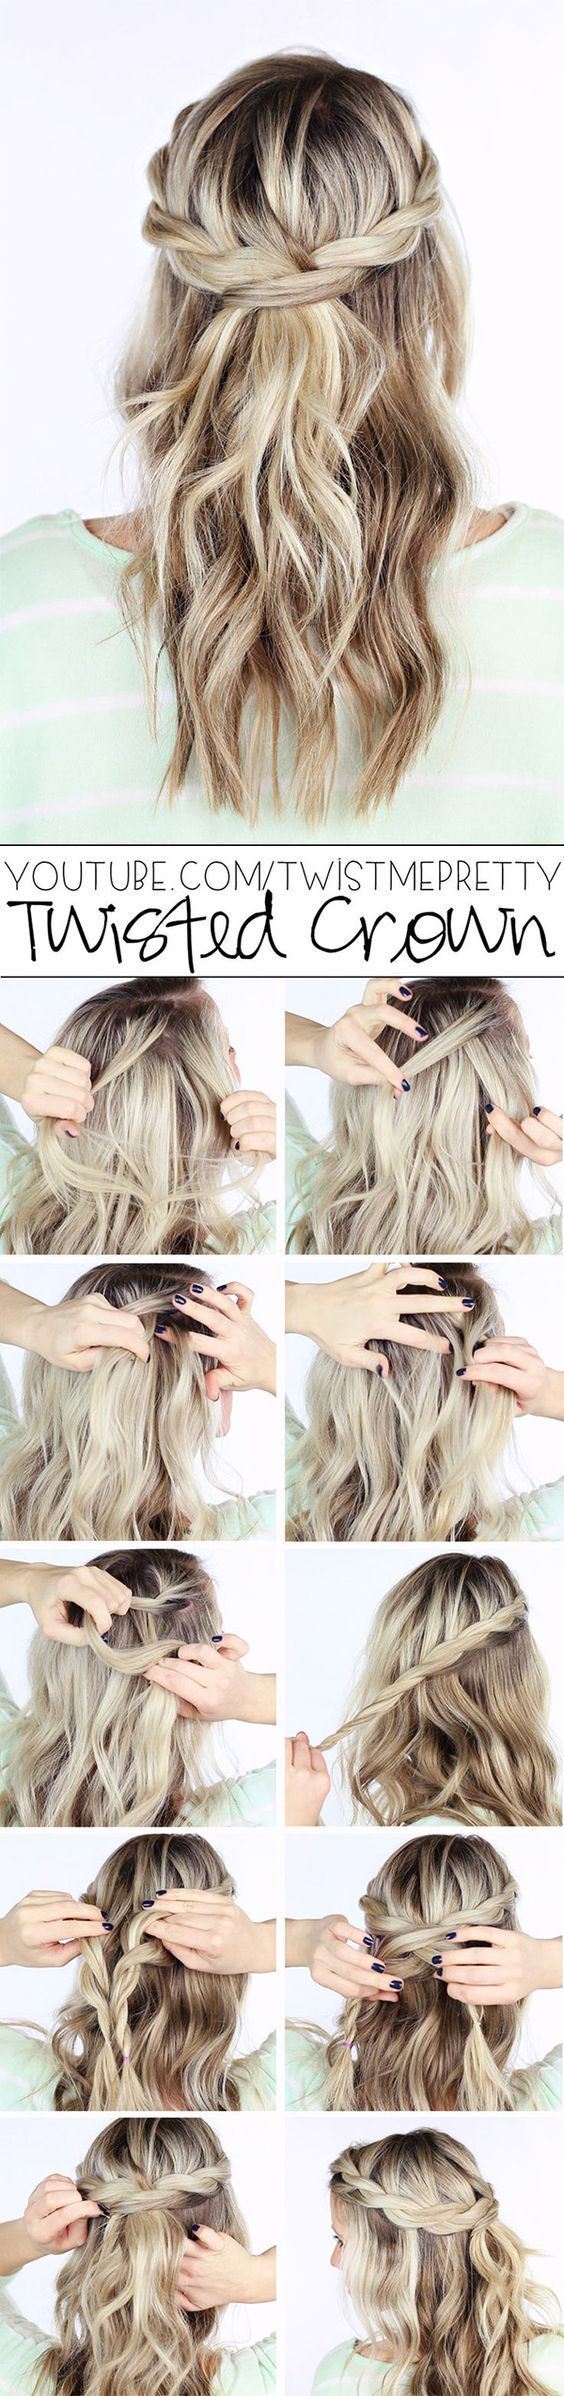 Androgynous women hairstyles shirts winter formal pinterest